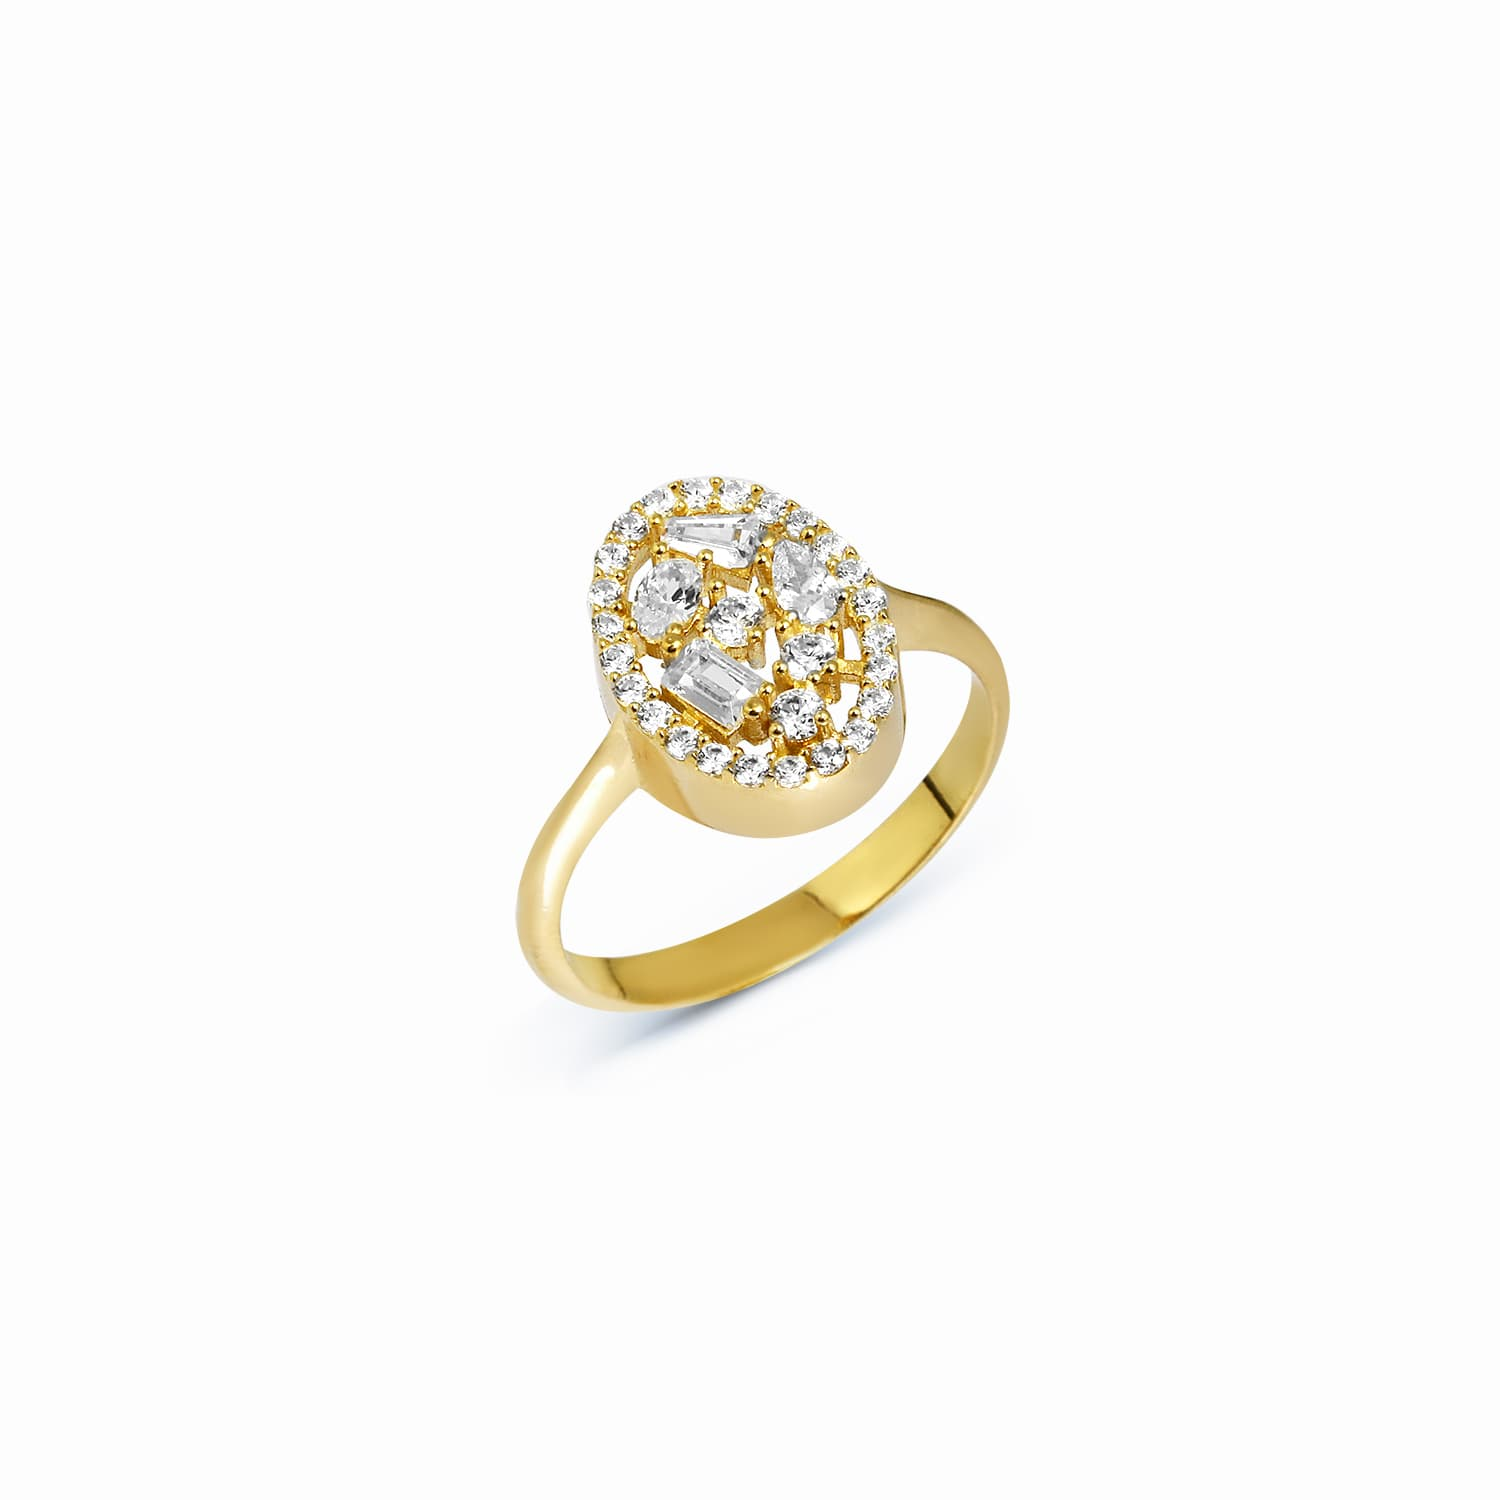 OVAL BAGET RING